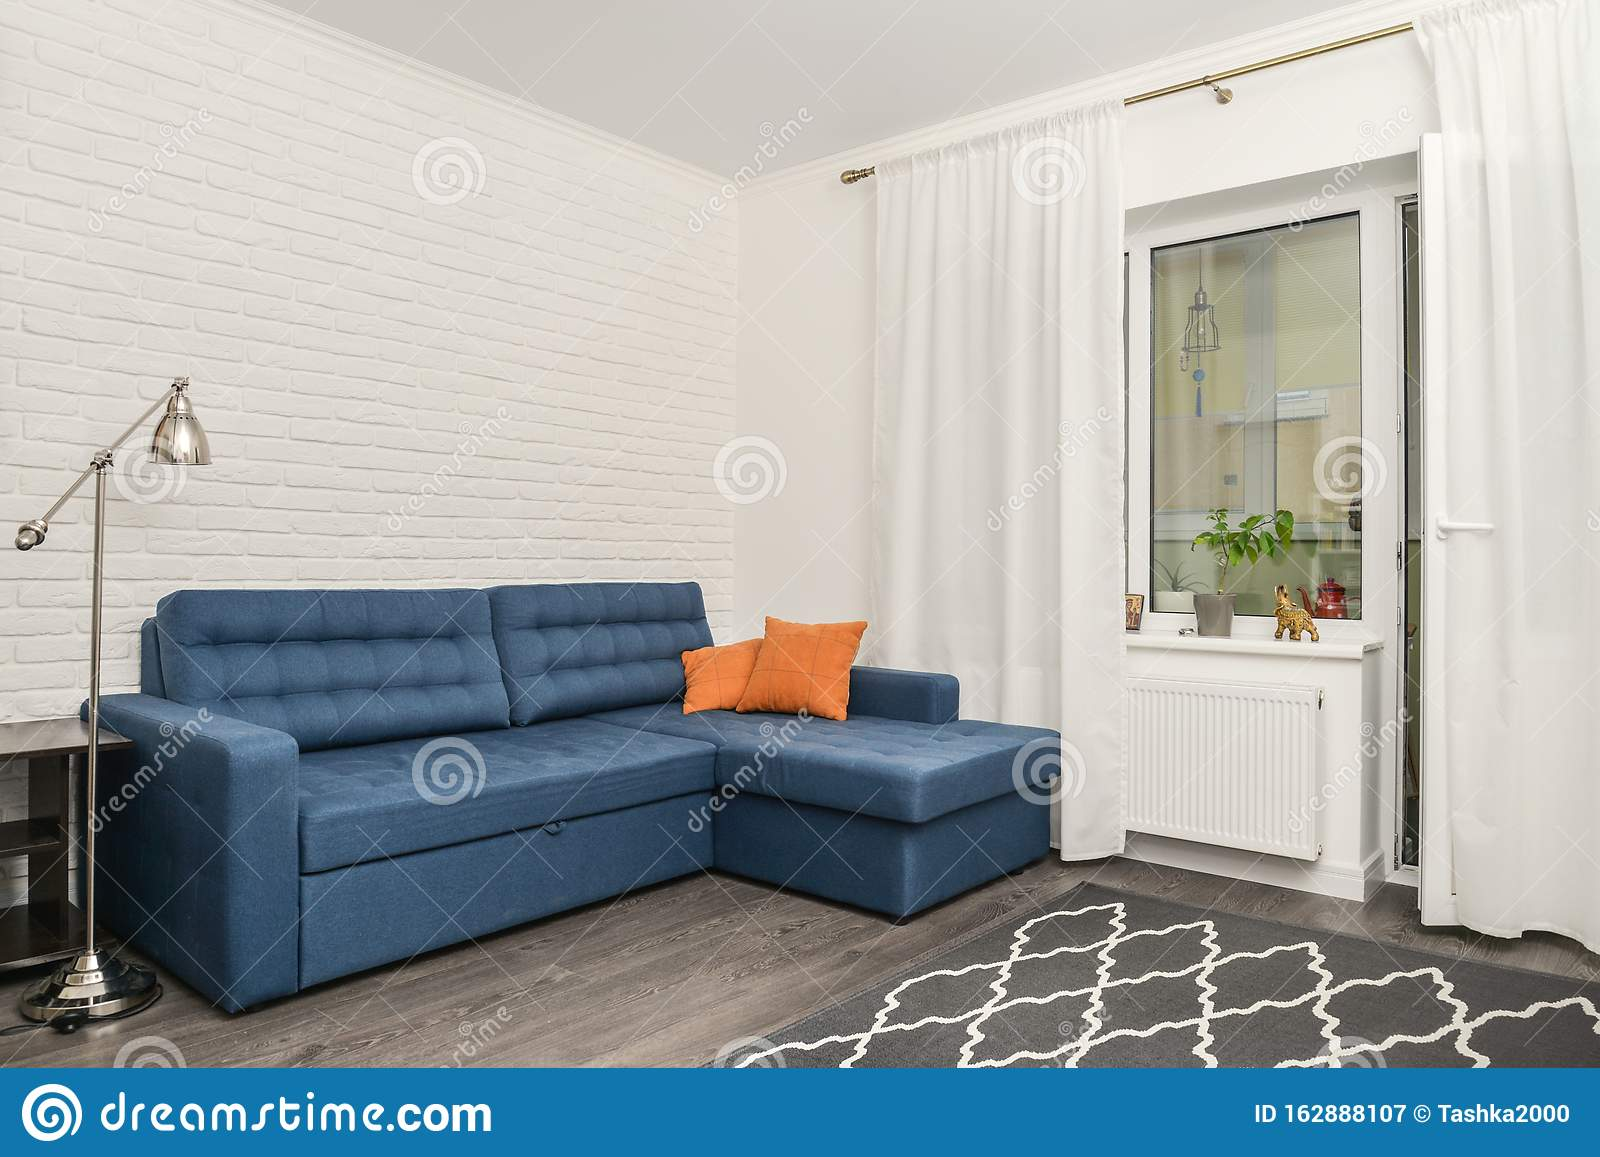 https www dreamstime com clean family room blue couch white brick wall yellow curtains design interior concept image162888107